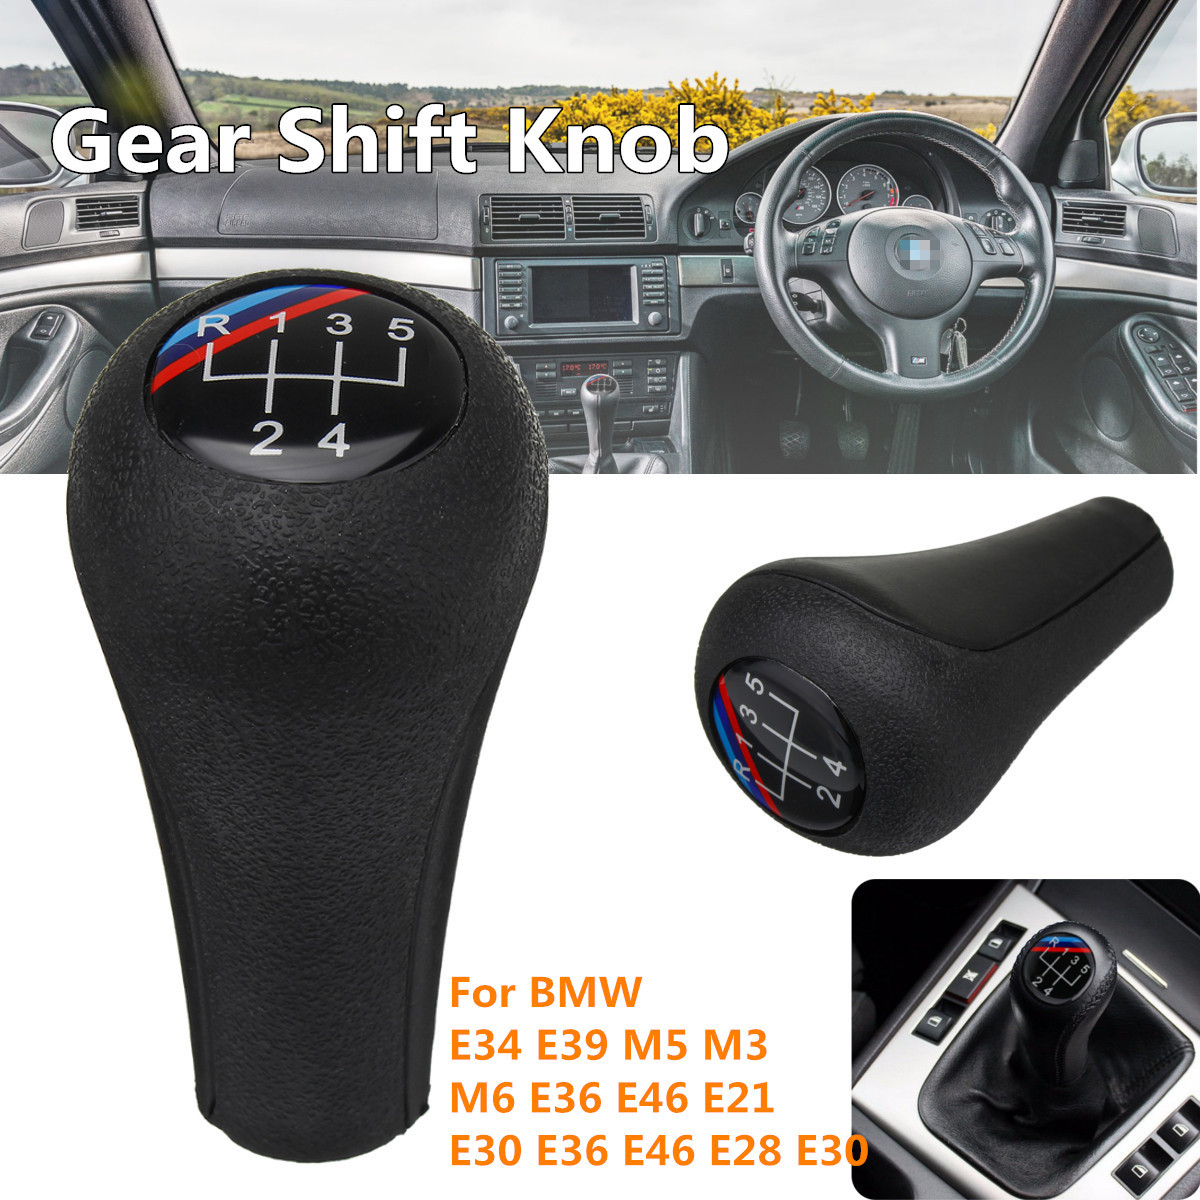 5 Speed Gear Shift Knob For <font><b>BMW</b></font> E34 E39 M5 M3 M6 E36 E46 <font><b>E21</b></font> E30 E36 E46 E28 E30 Black gear knob image